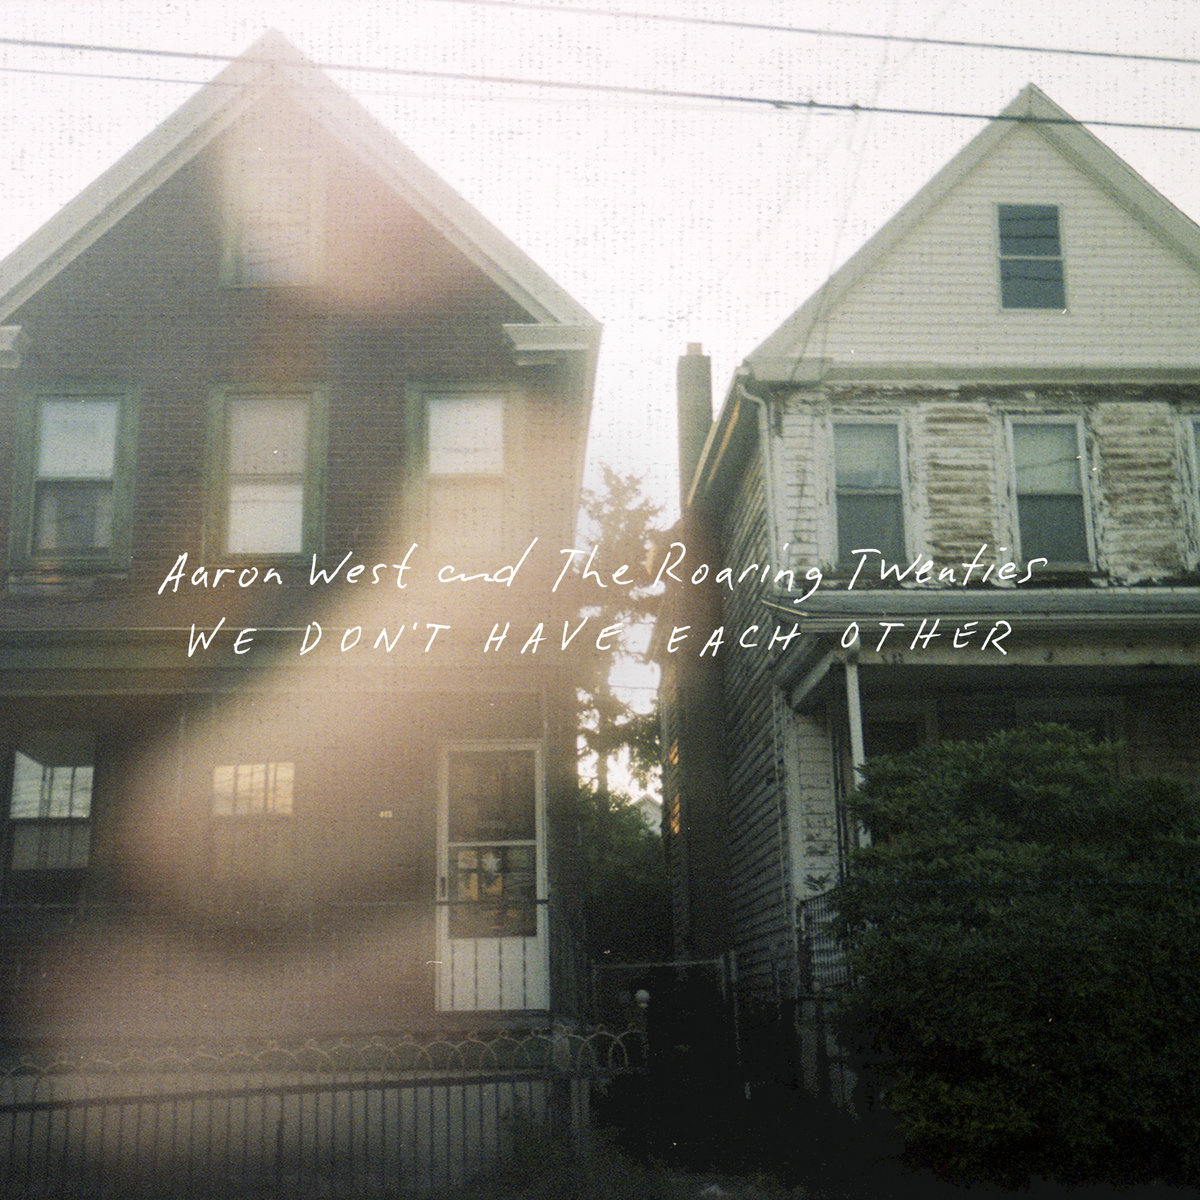 Aaron West and The Roaring Twenties - We Don't Have Each Other LP